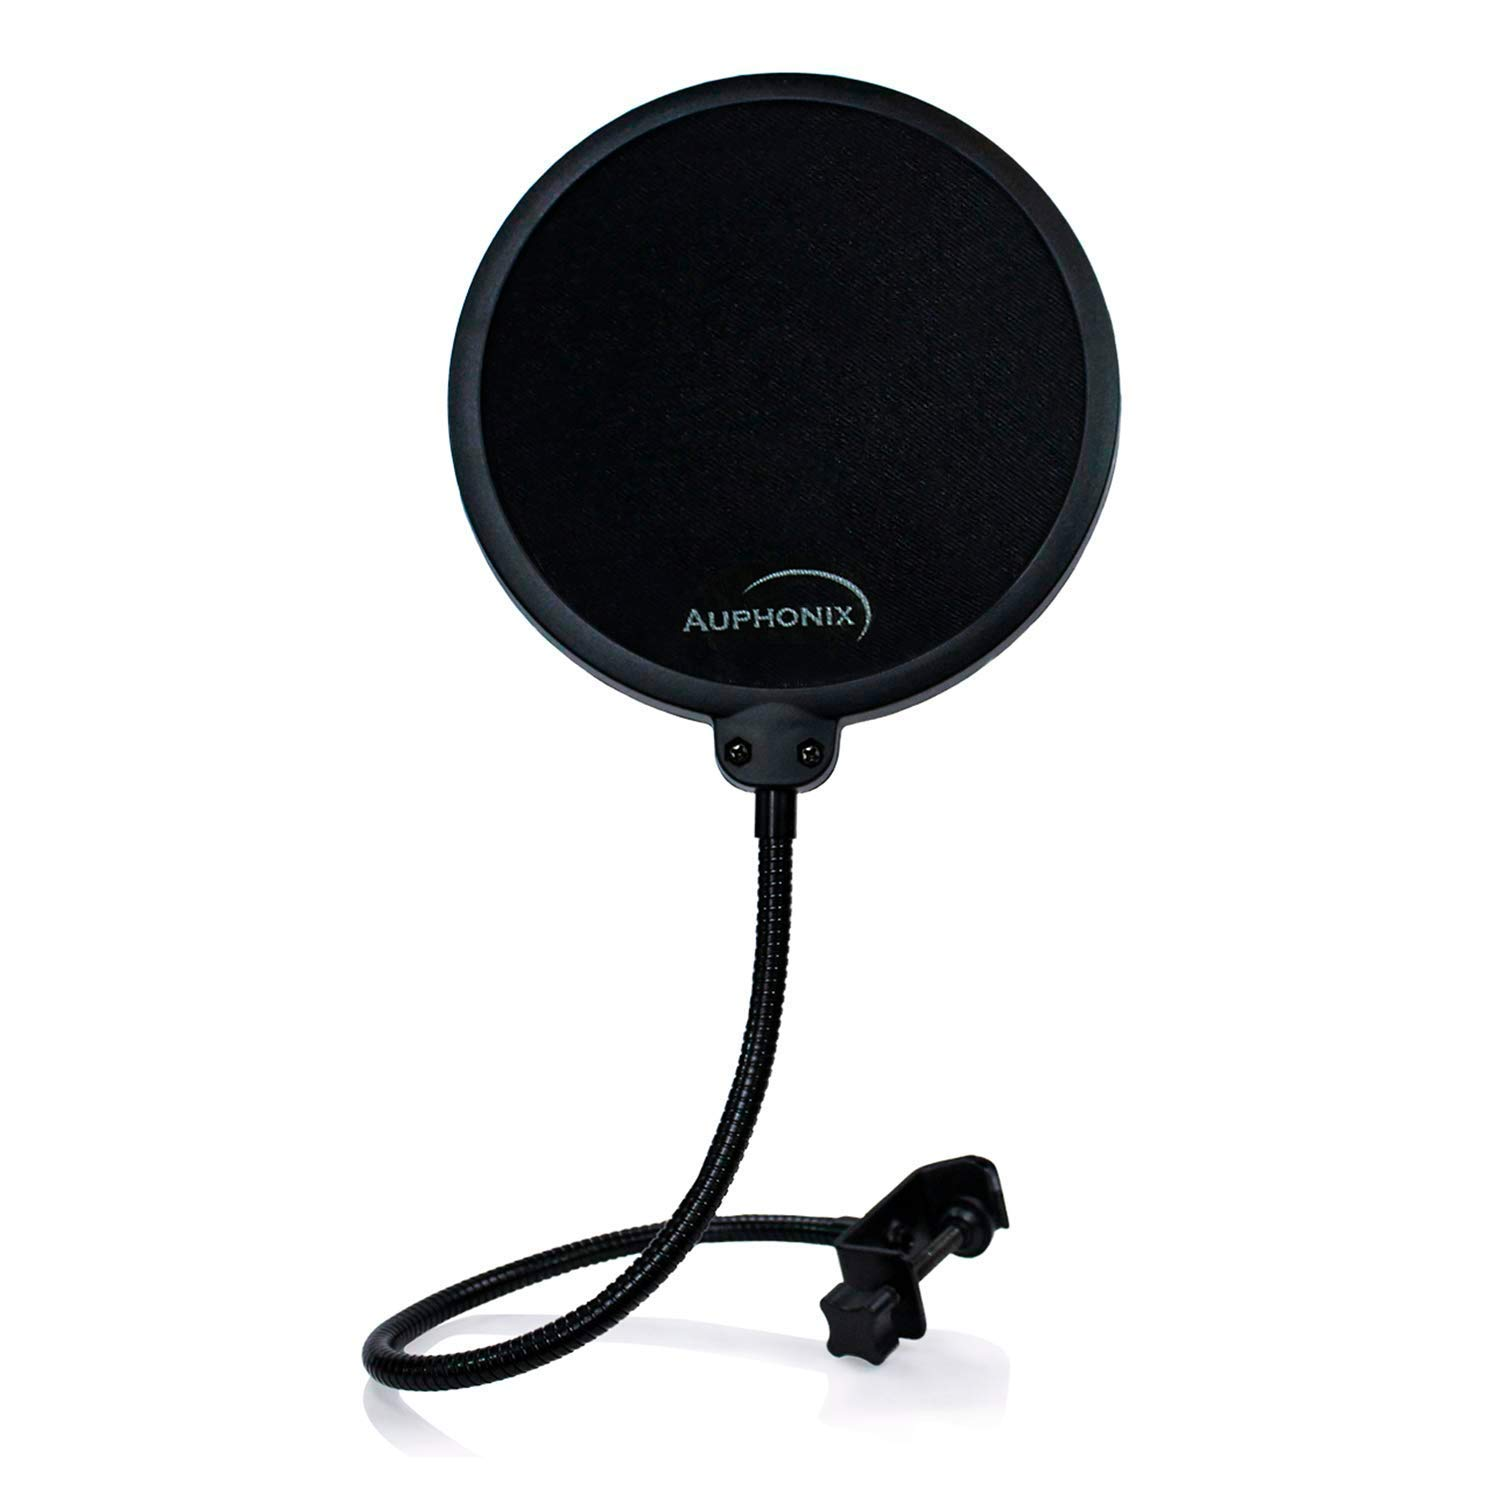 Auphonix Pop Filter Screen for Microphones - Gooseneck Clamp Compatible with Blue Yeti Snowball Microphone